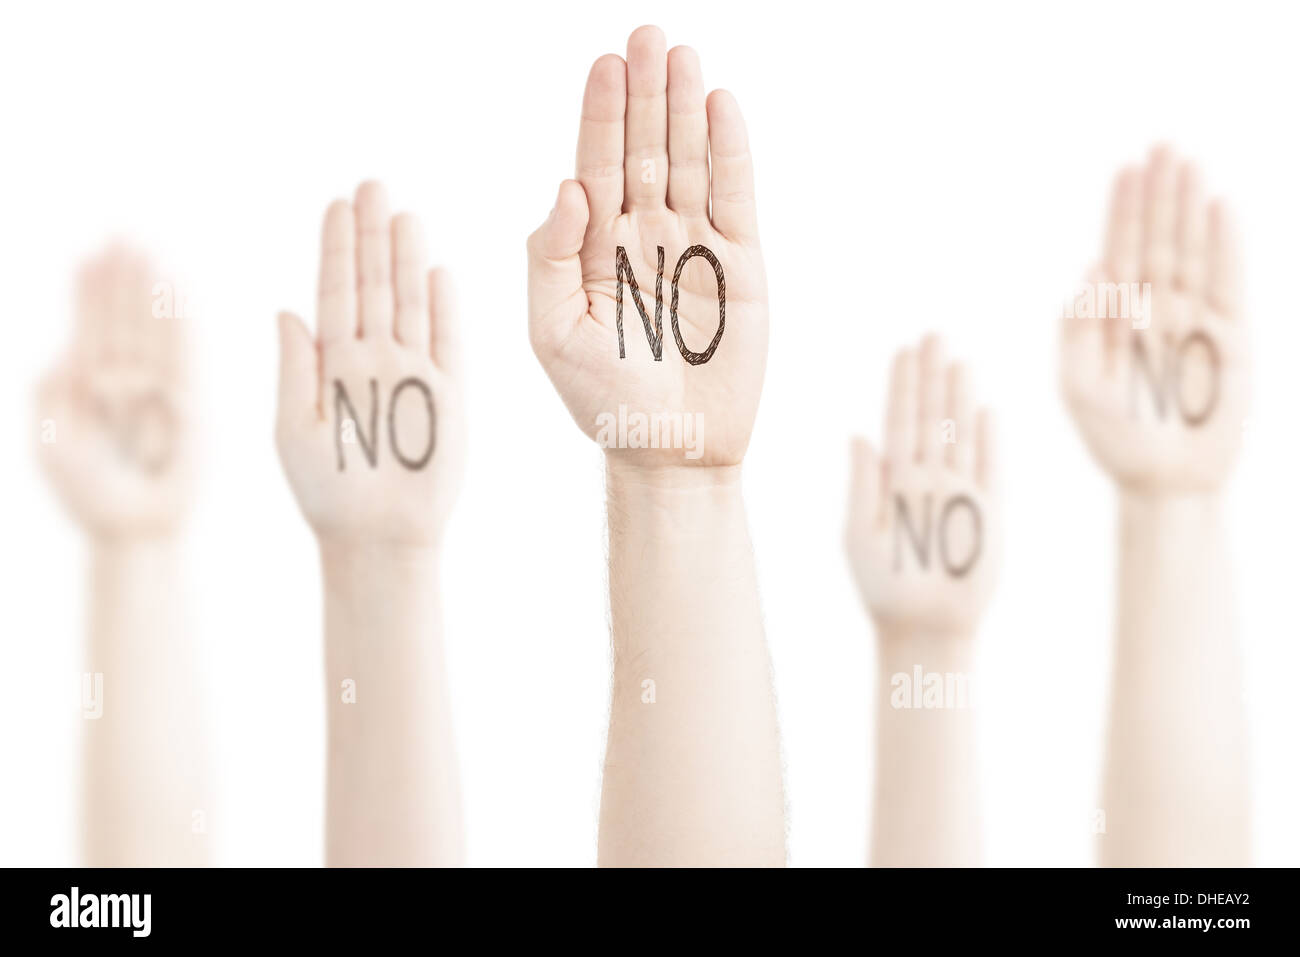 Hands raised to the sky on a white background, expression of protest. On the palms there is an inscription — 'No'. - Stock Image